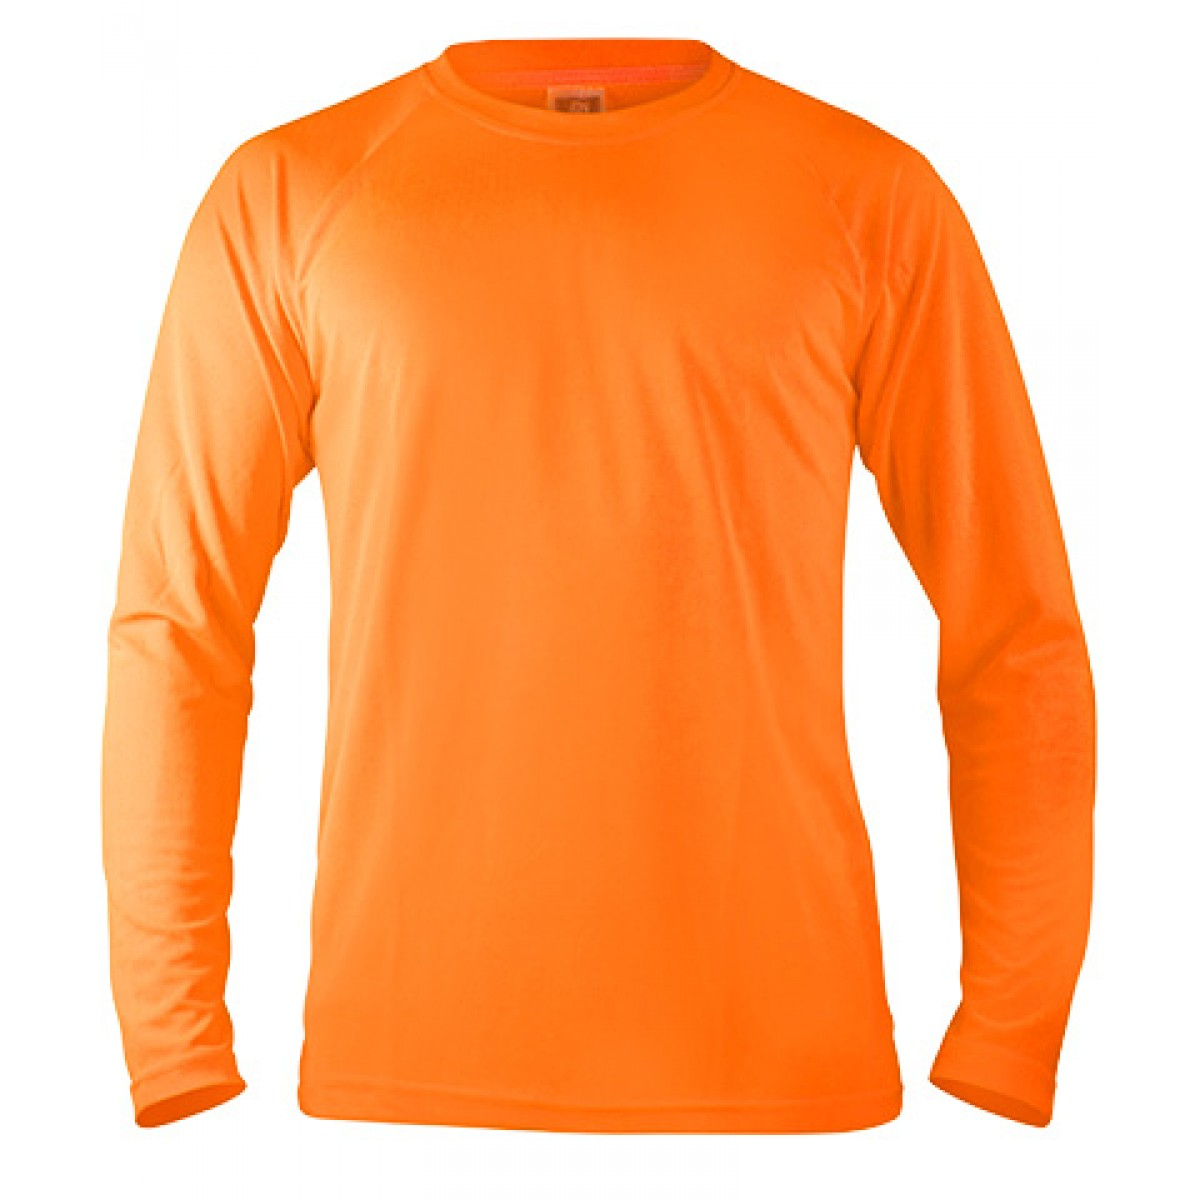 Long Sleeve Performance -Safety Orange-M